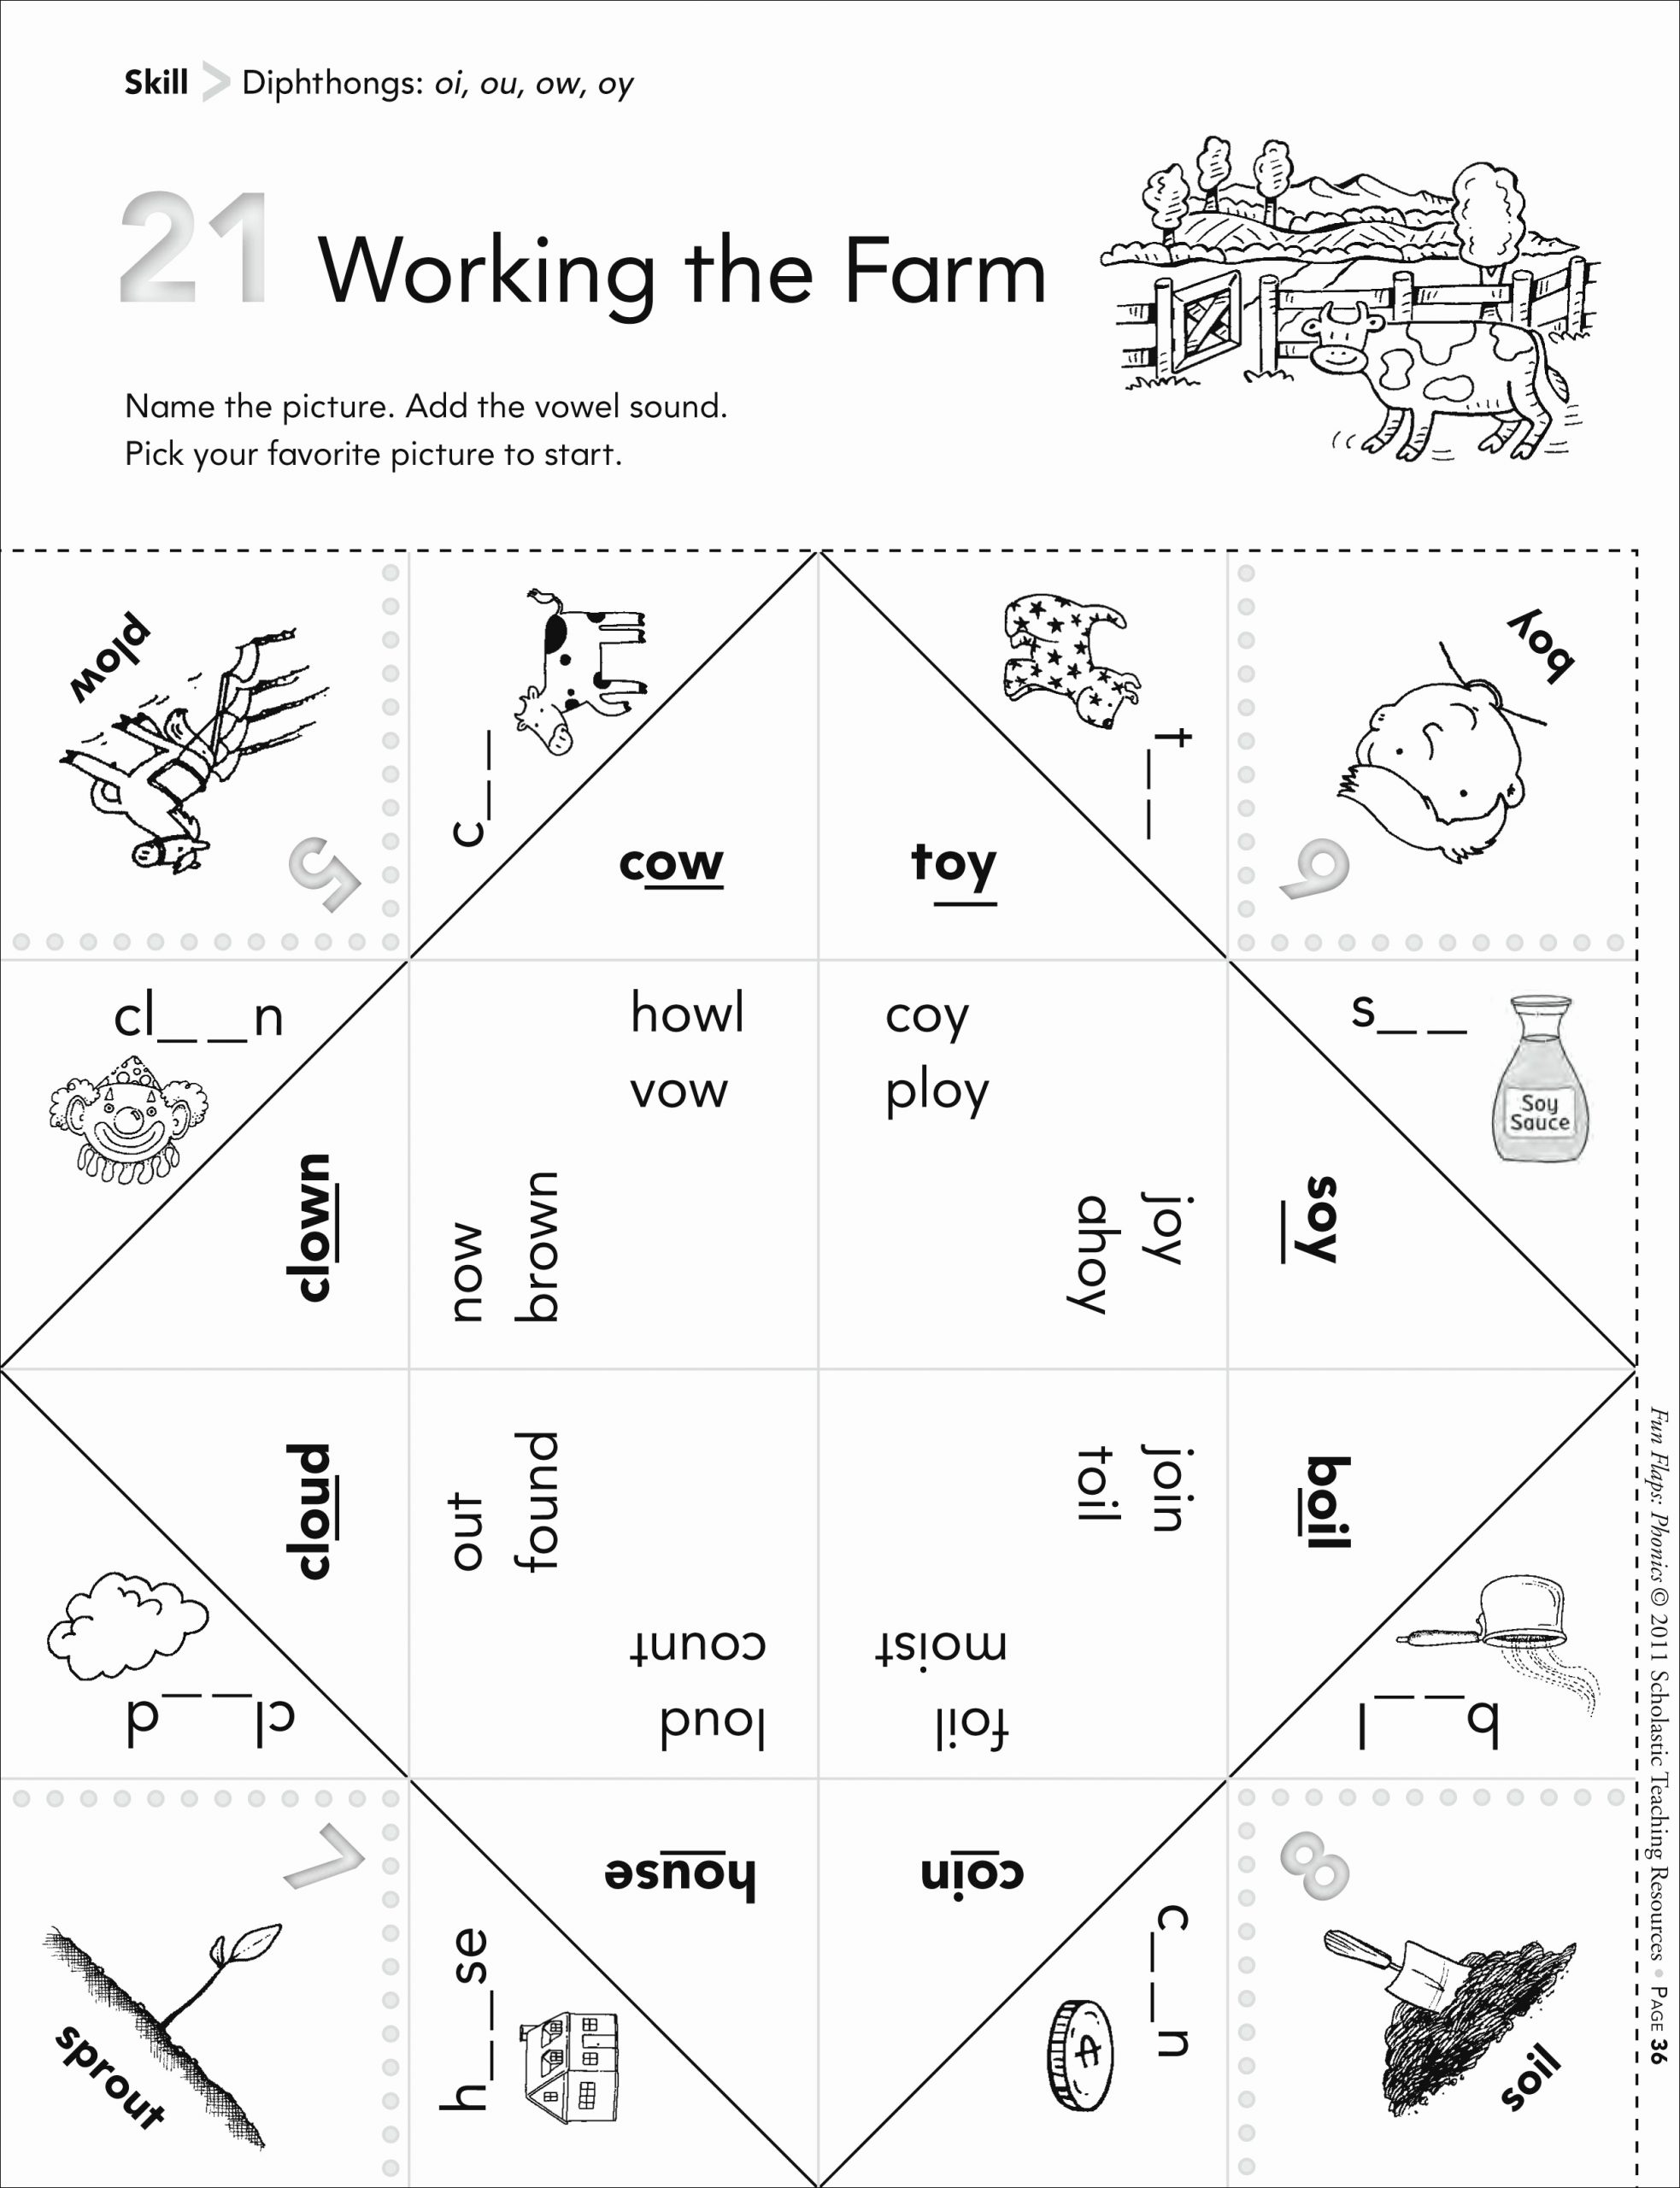 Diphthong Oi Oy Worksheets Inspirational 14 Best Of Phonics Oi and Oy Worksheets Oy and Oi